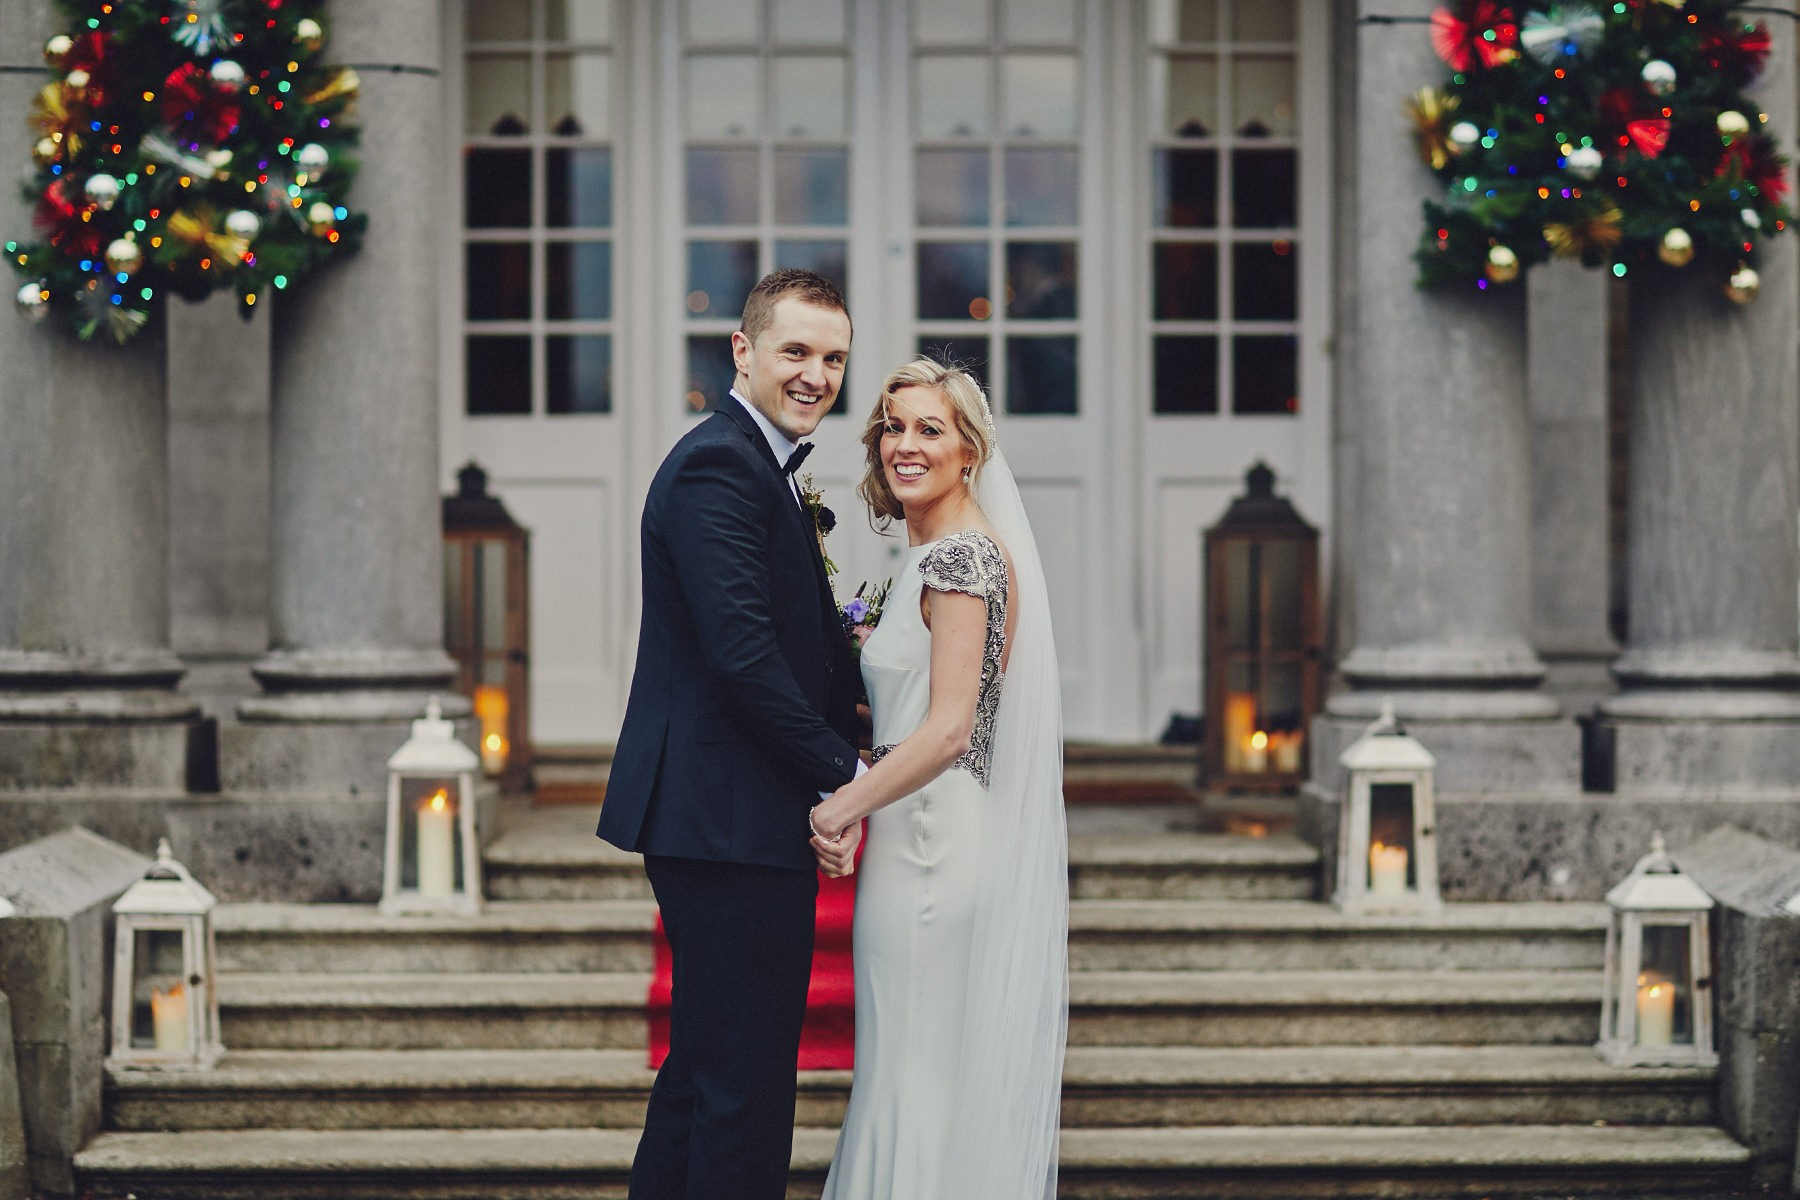 Perfcet Wedding Venue Dublin Palmerstown Estate040 - Perfect Wedding Venue close to Dublin?